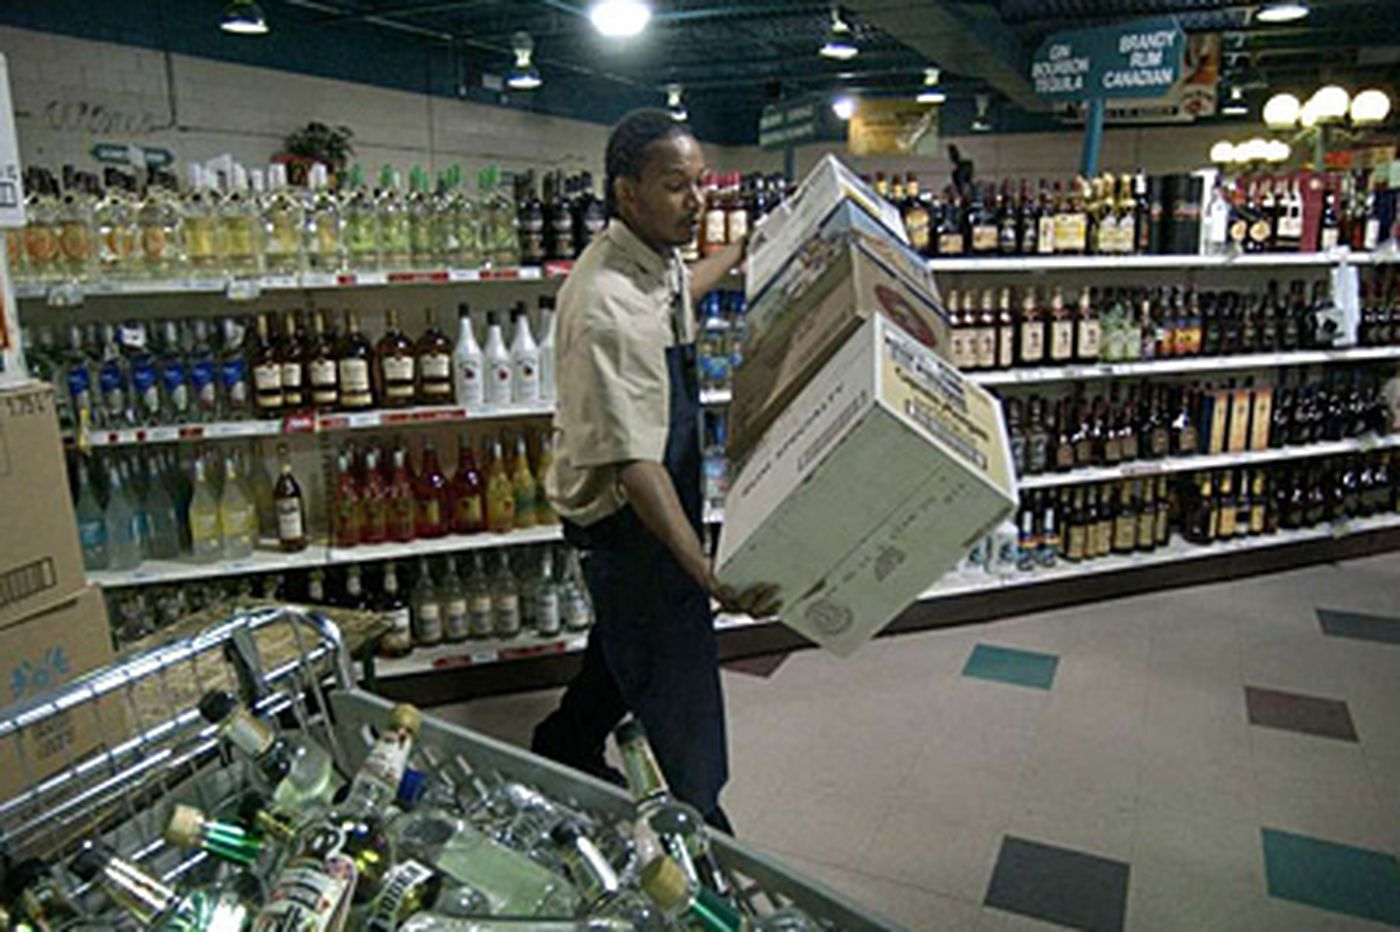 Watchblog: Audit finds $1 million in assets unaccounted for by Liquor Control Board